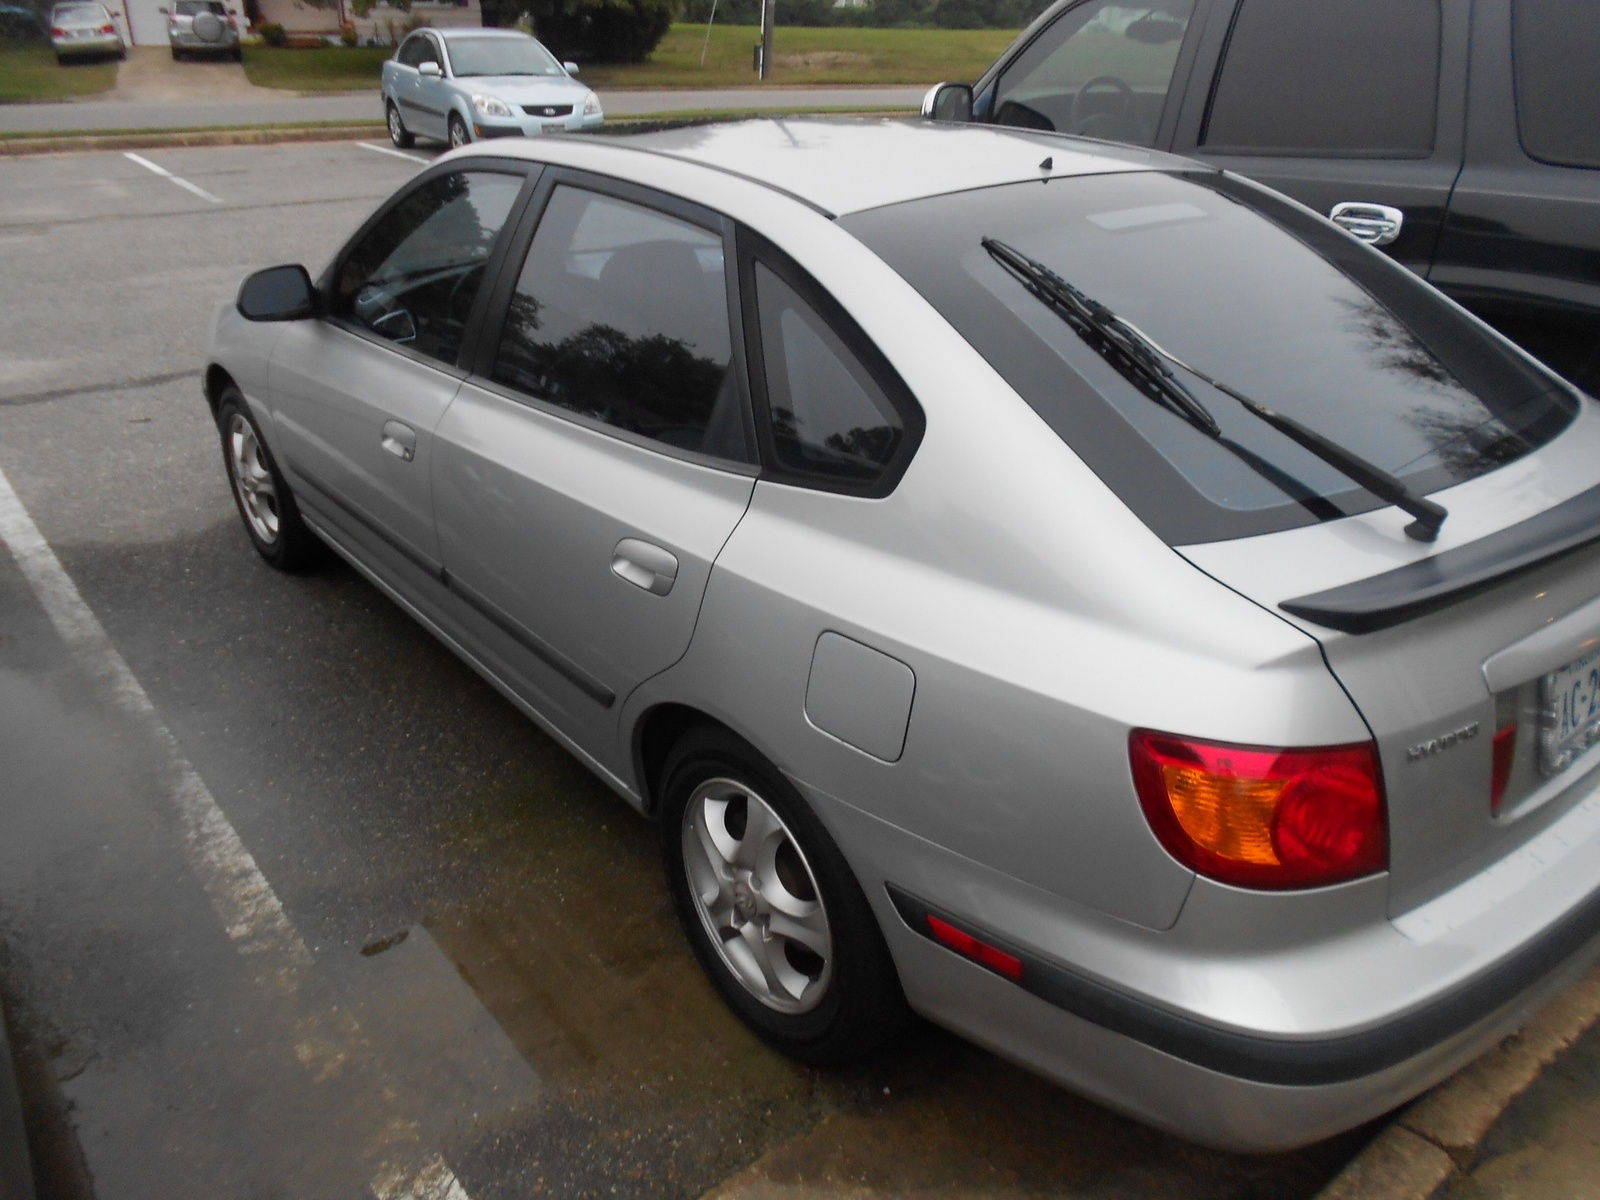 Picture of 2003 Hyundai Elantra GT